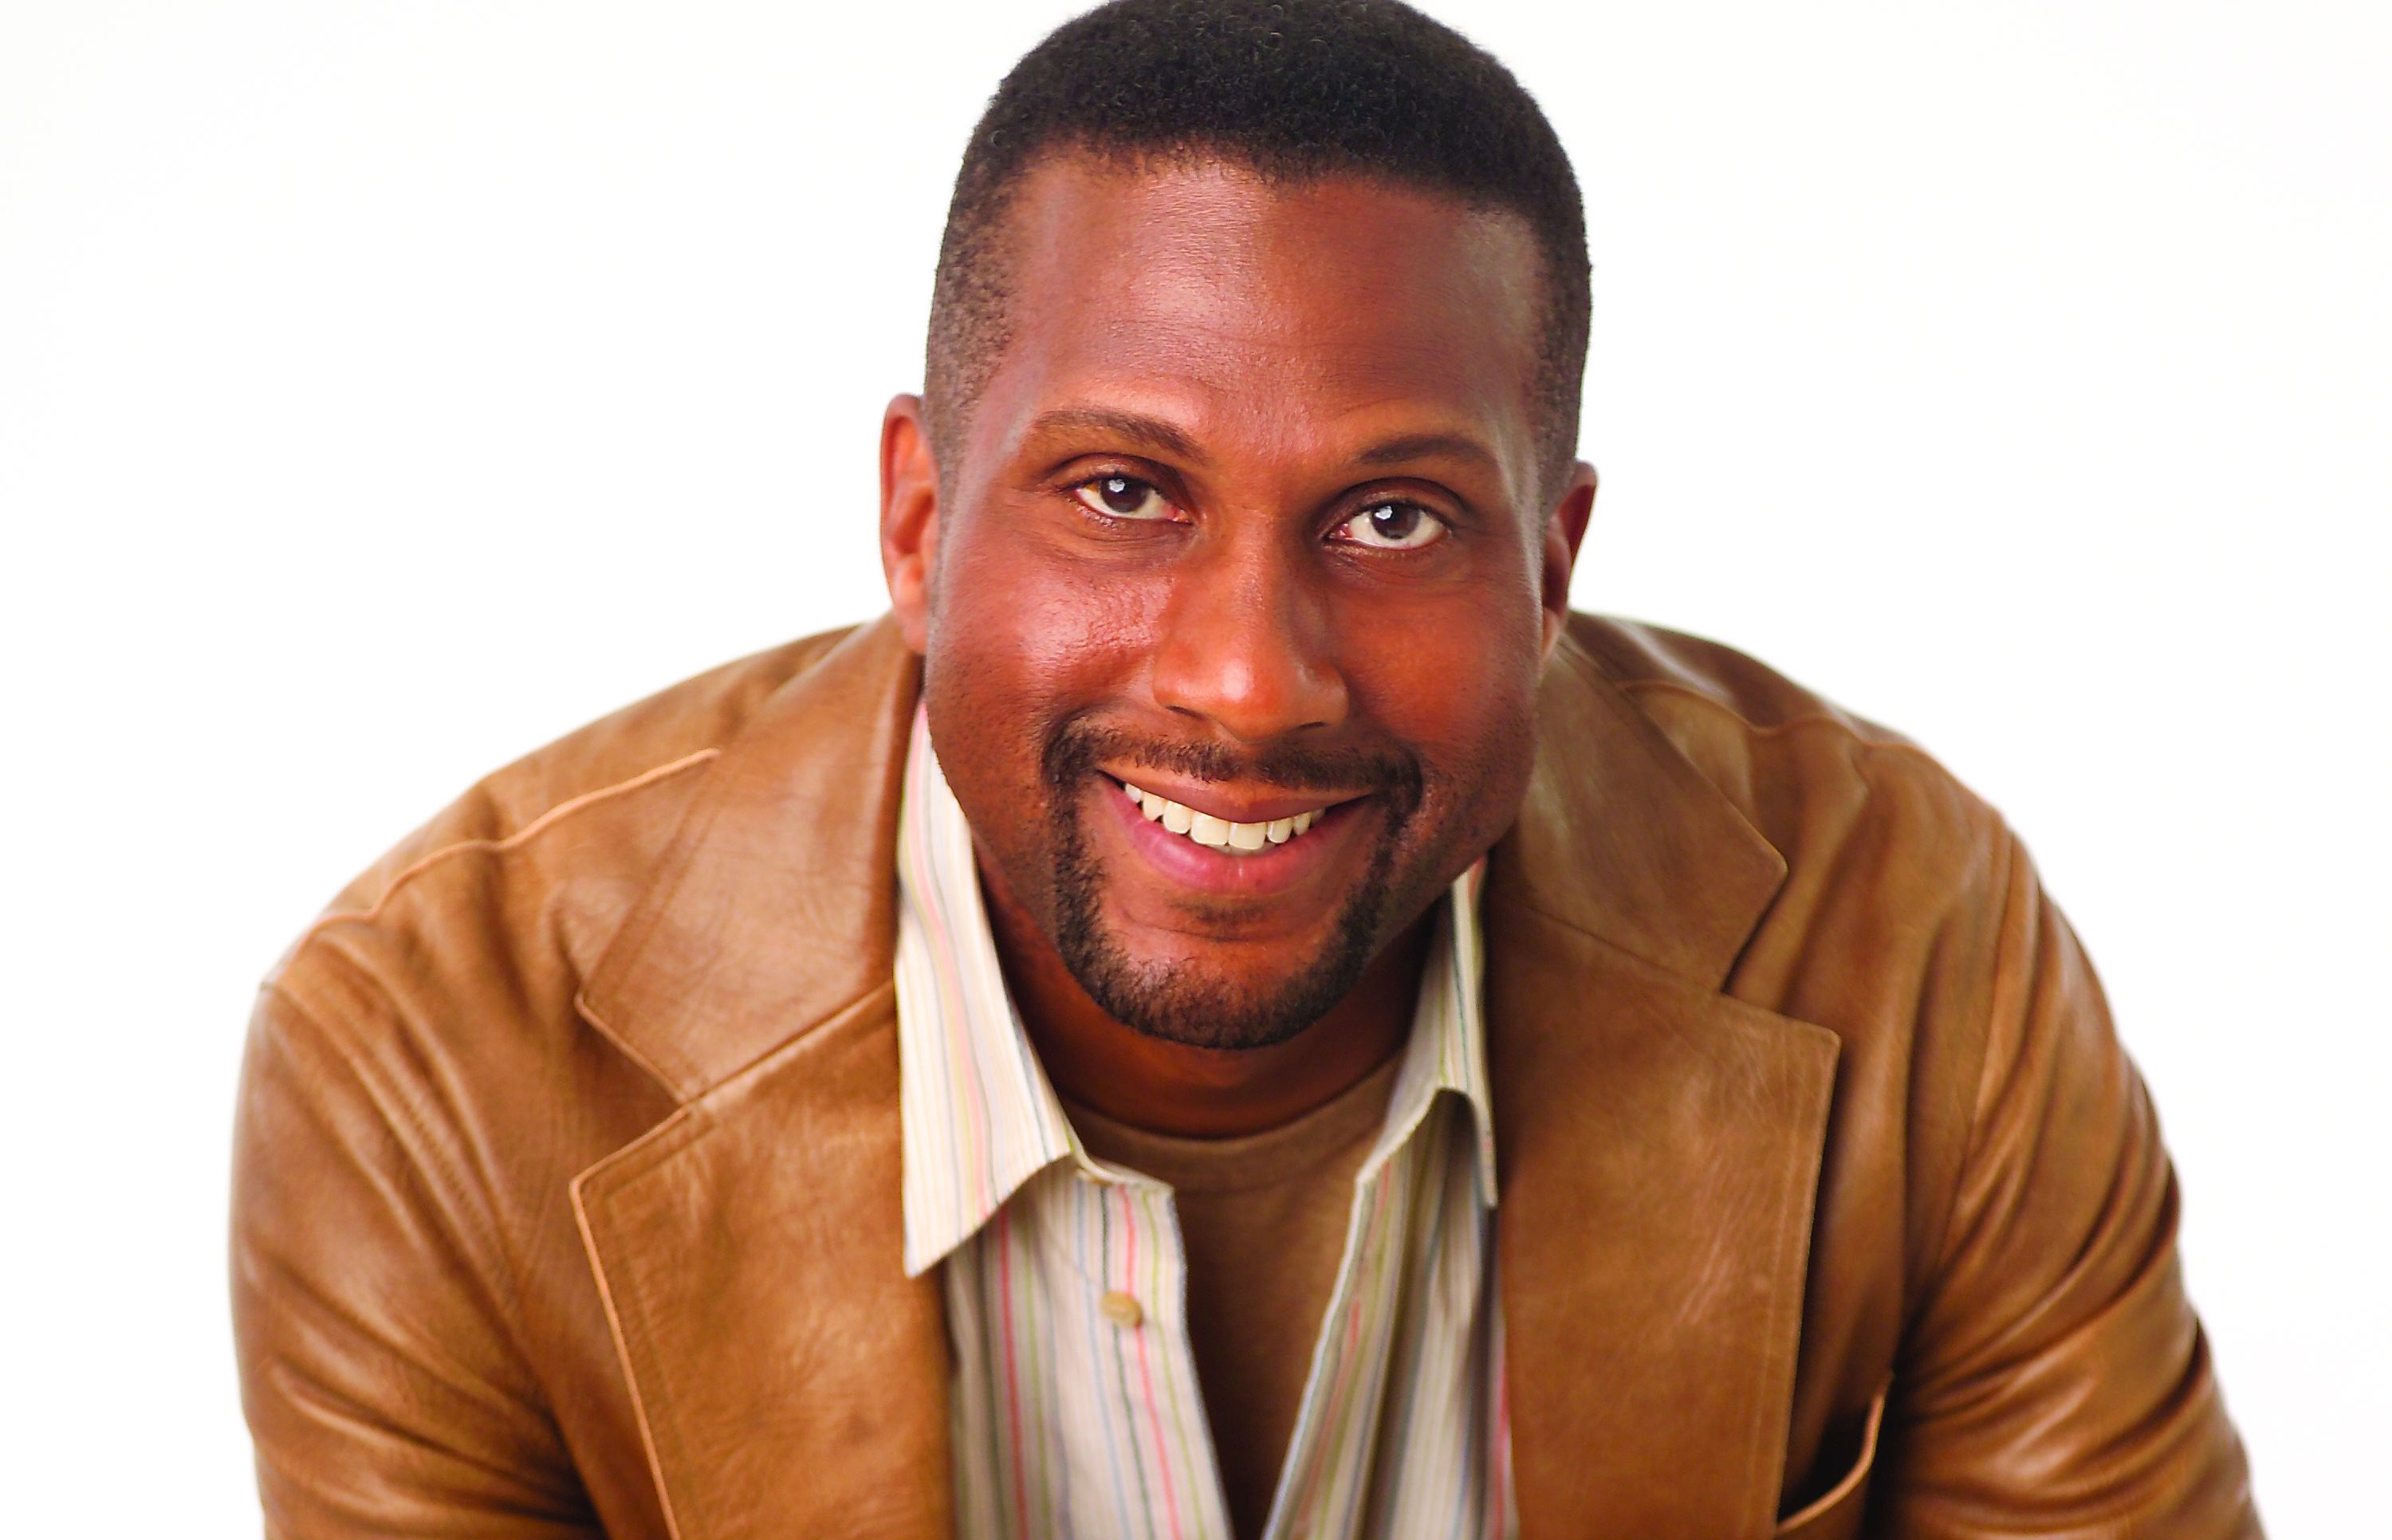 Talk show host, author, and activist Tavis Smiley was once controversially fired as host of BET Tonight with Tavis Smiley in 2001. He went on to host his own progrm, The Tavis Smiley Show, on NPR, where he interviewed President Barack Obama, among other celebrities and notables, and became a commentator on the Tom Joyner Morning Show. Smley is now host of a late-night show bearing his name on Public Broadcast Service (PBS) network, where guests have ranged from Prince to Dennis Miller. For more resources on rebounding after termination, check out: So You've Been Fired... Now What? Tips for how to get back in the game So You've Been Fired... Now What? Find inspiration from this accidental entrepreneur Reinvention Required: Handle Unforeseen Change With Confidence and Smarts